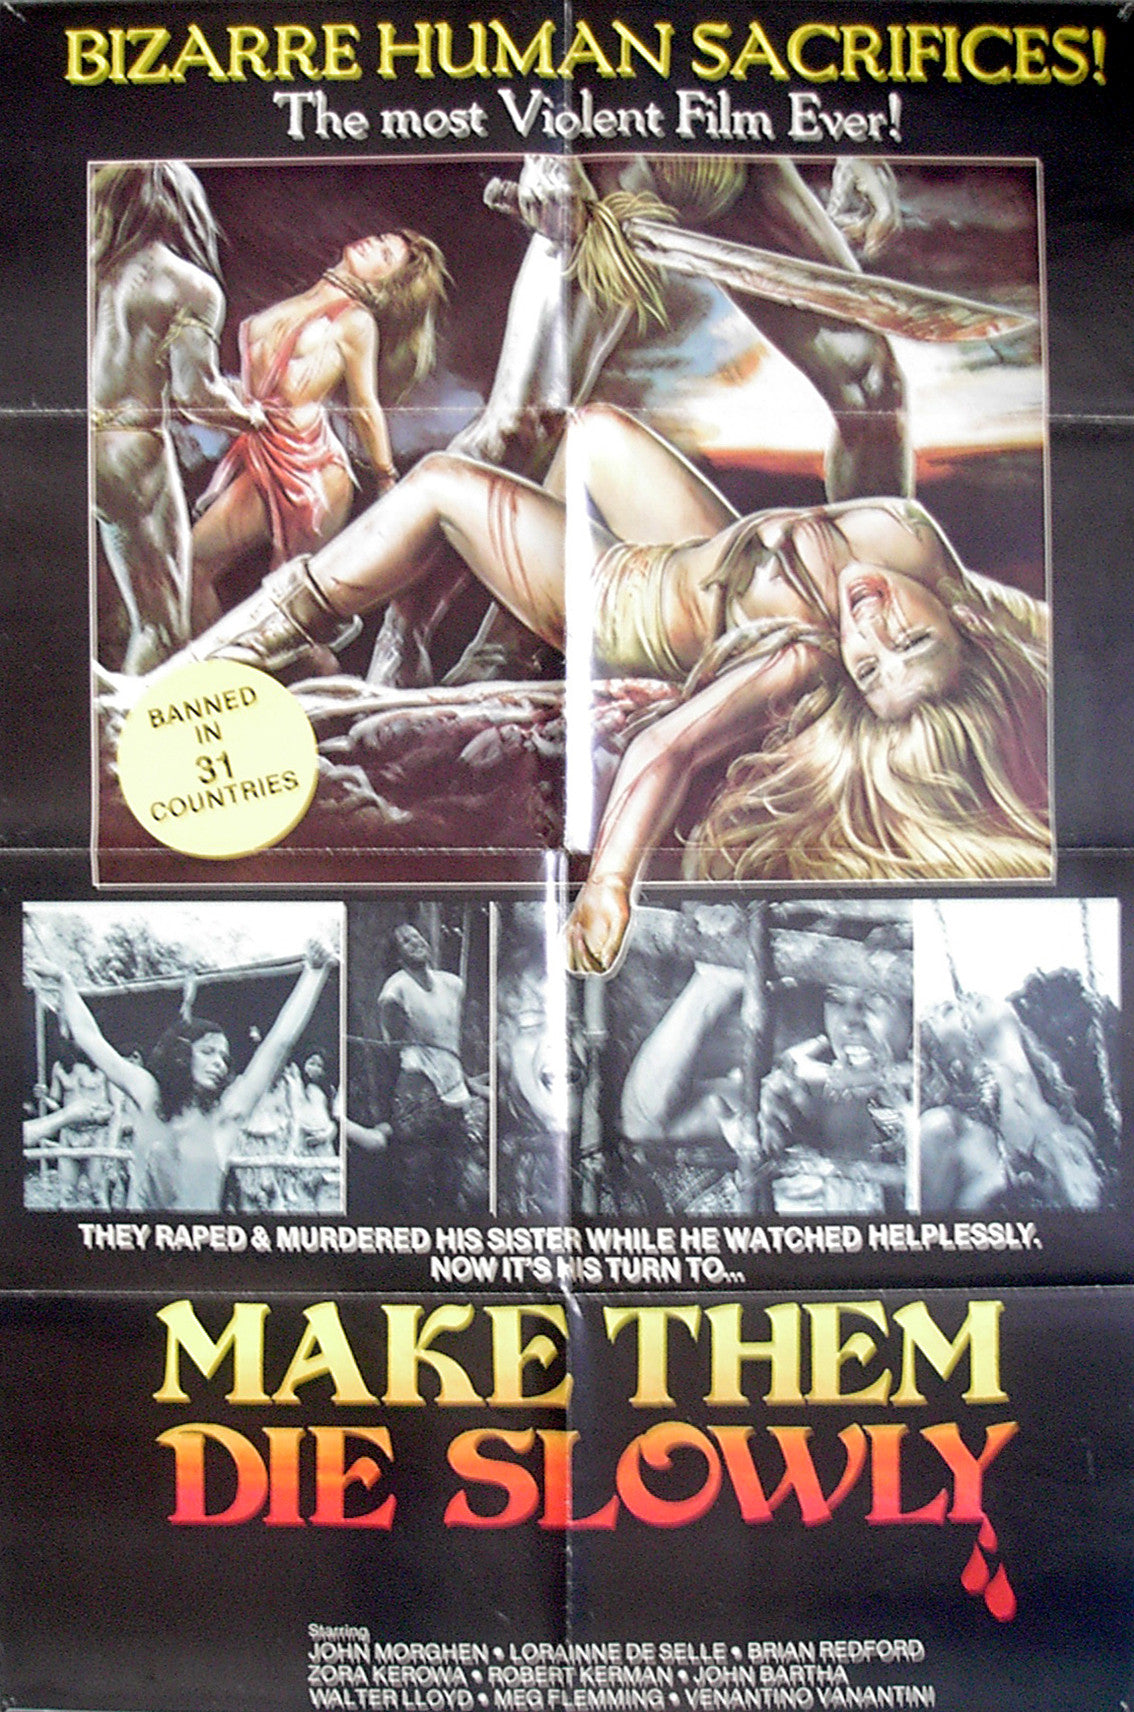 MAKE THEM DIE SLOWLY - US one-sheet poster